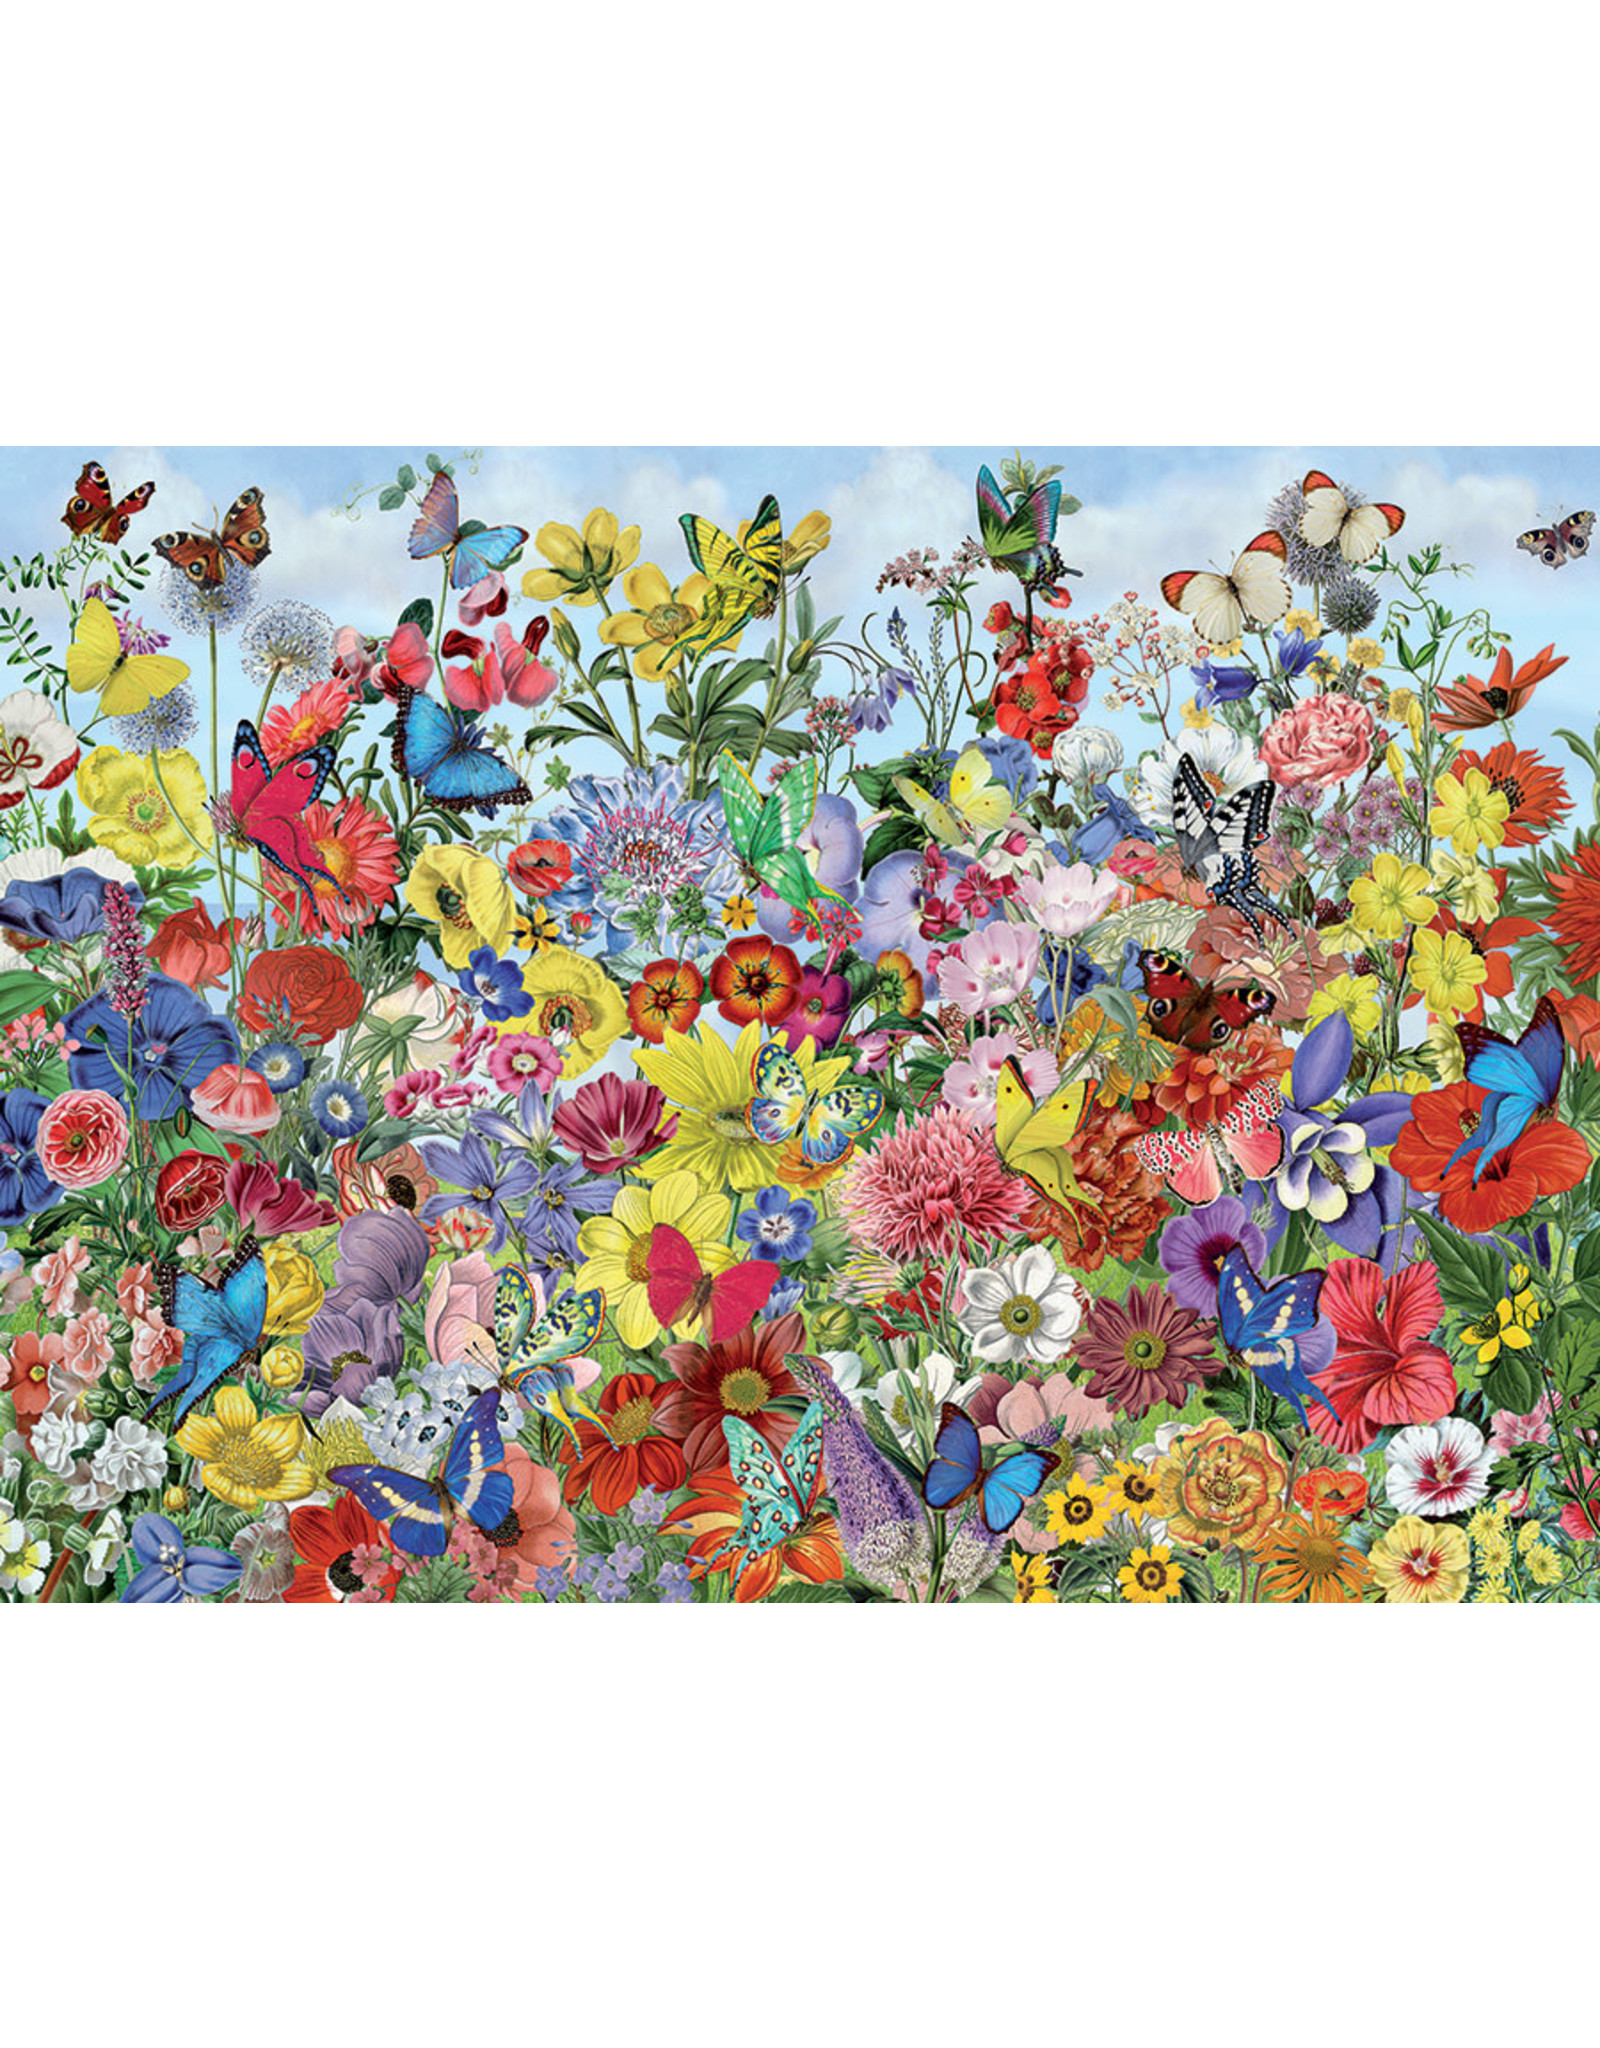 Cobble Hill Puzzles OM80032 Cobblehill Puzzle 1000pc Butterfly Garden